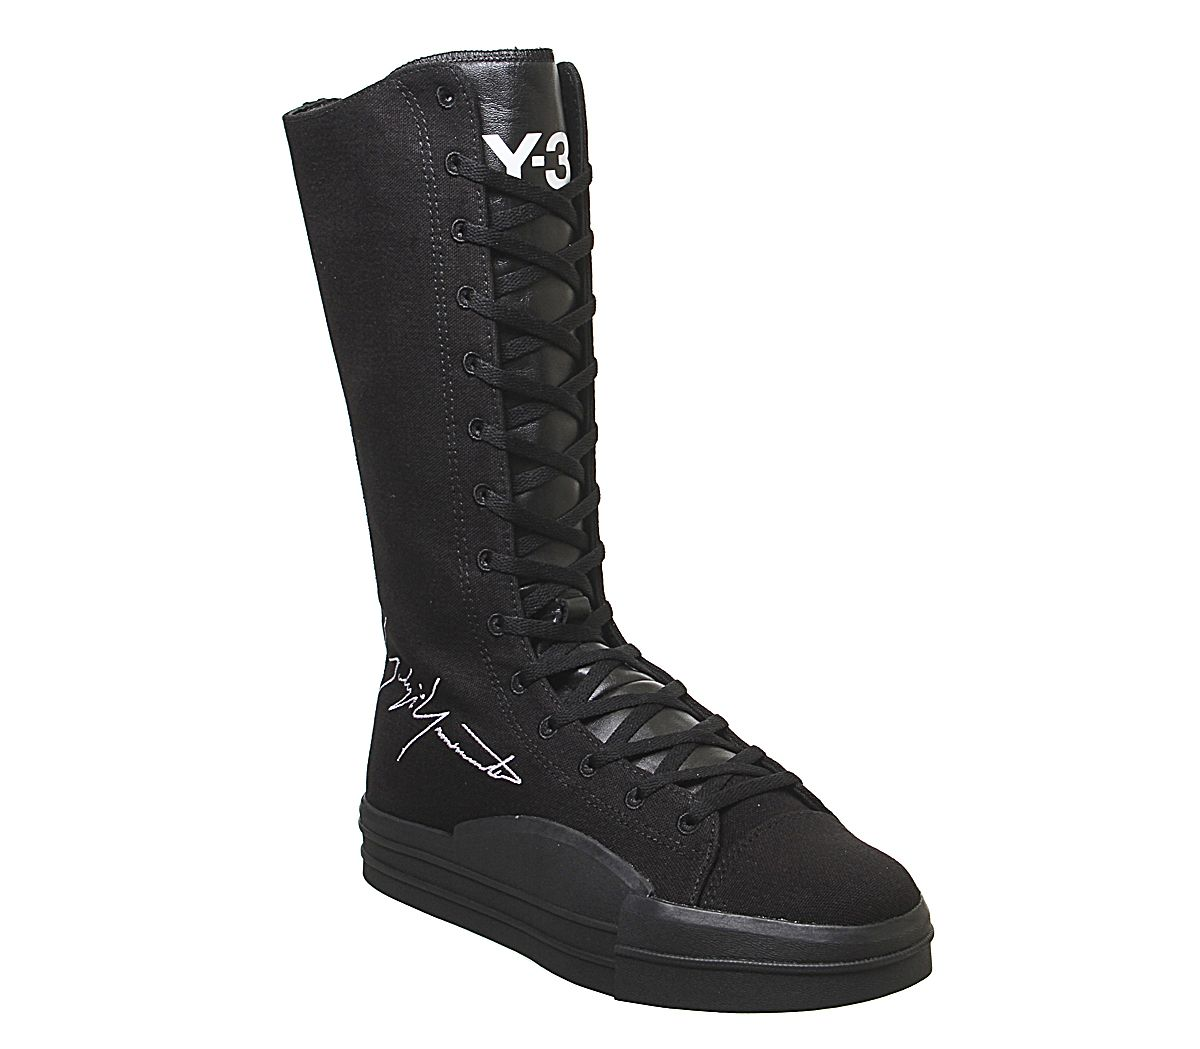 best loved cba36 21e06 adidas Y3 Y3 Yuben Boots Black Black White - Hers trainers